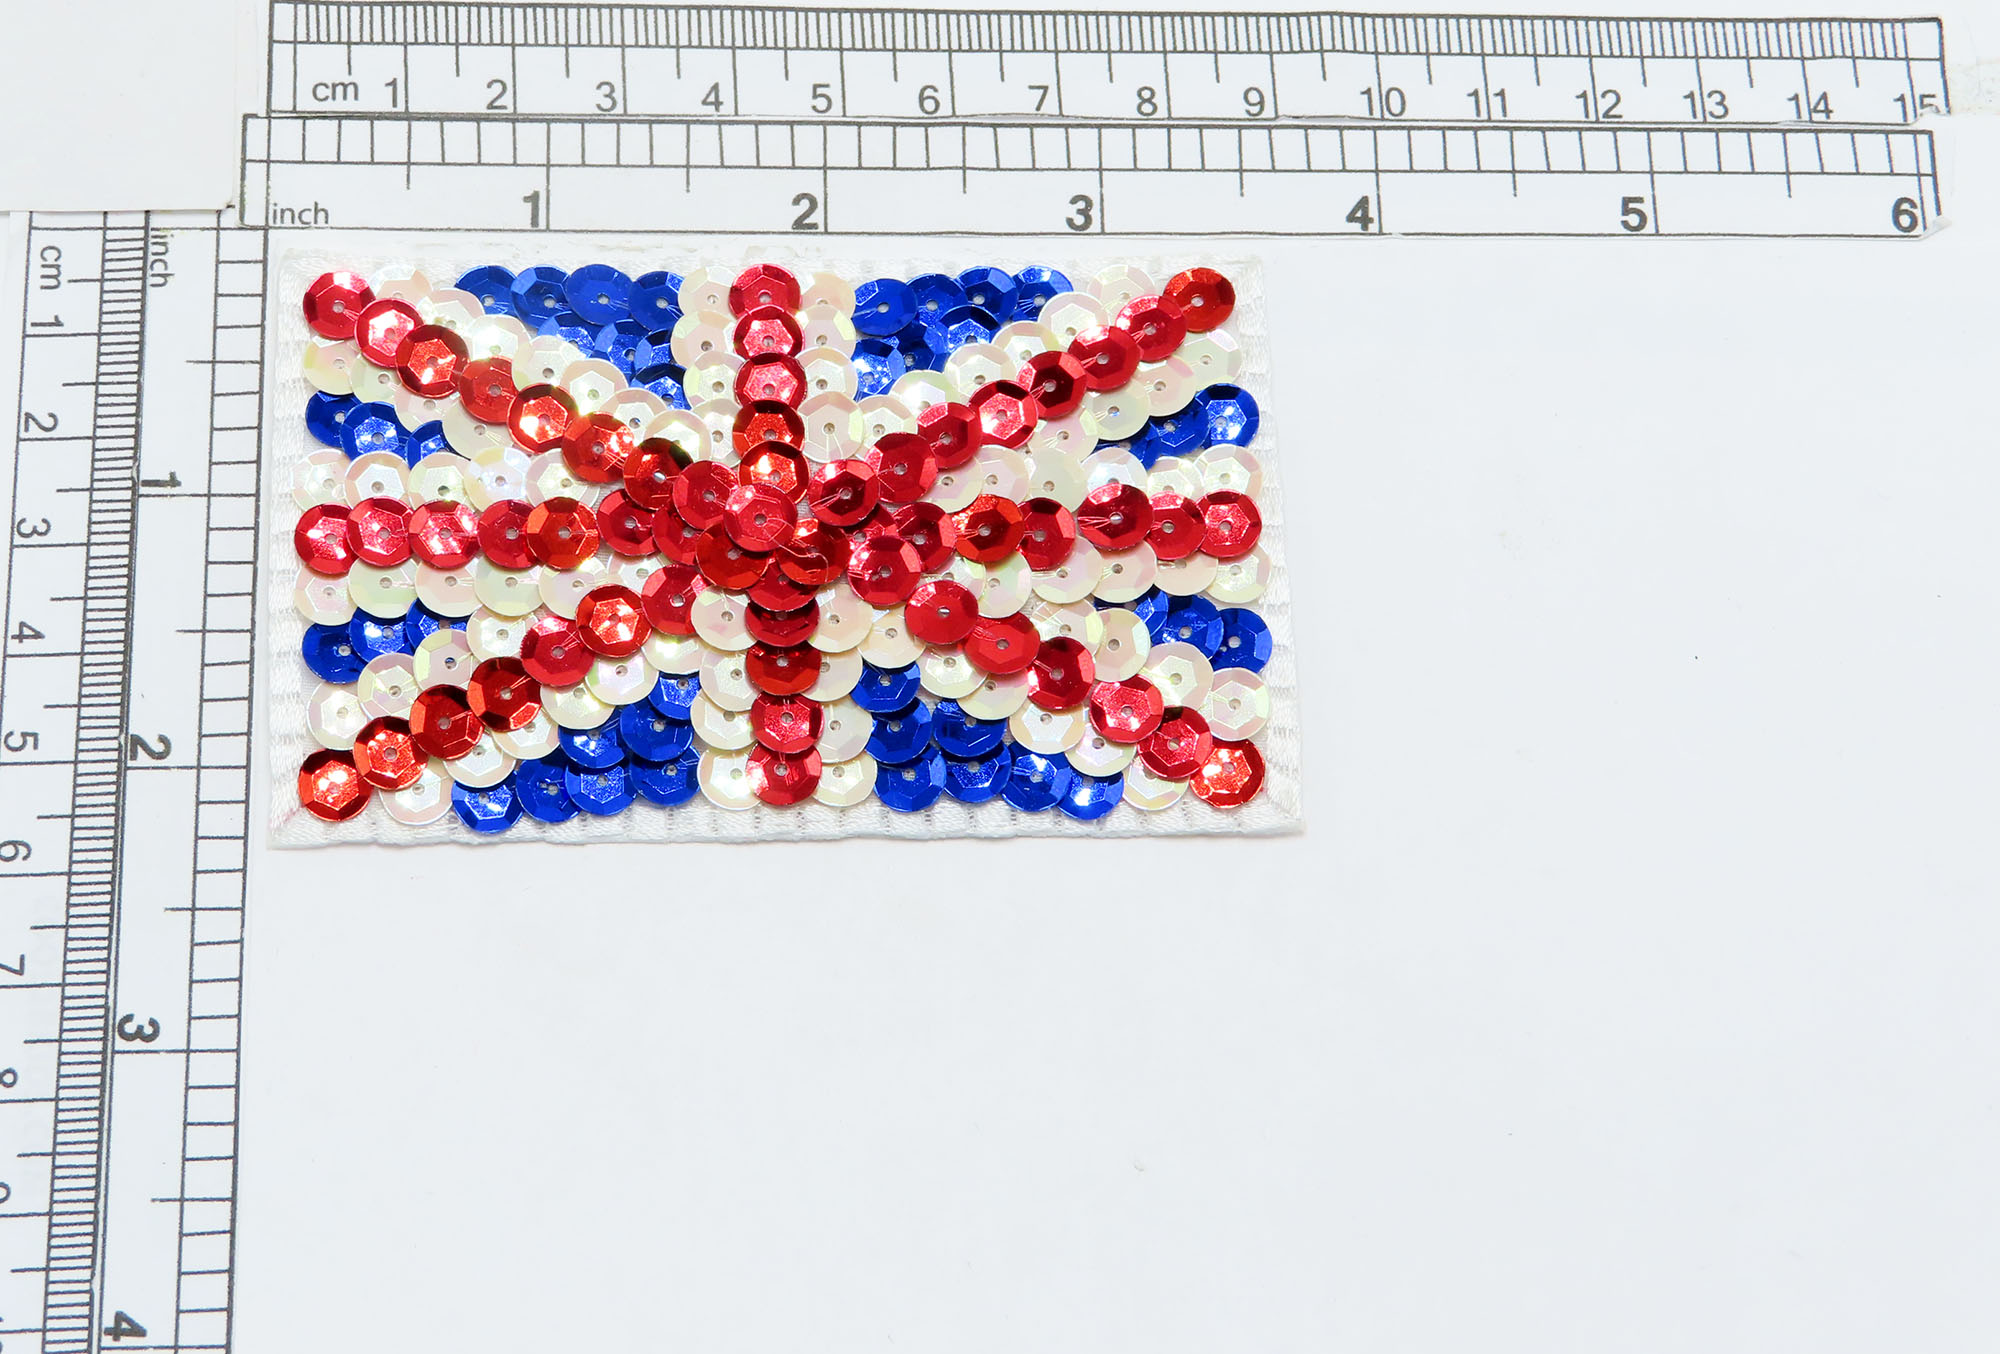 """Sequin Union Jack UK Flag   3 1/2"""" x 2 1/2""""  (89mm x 64mm) approx"""